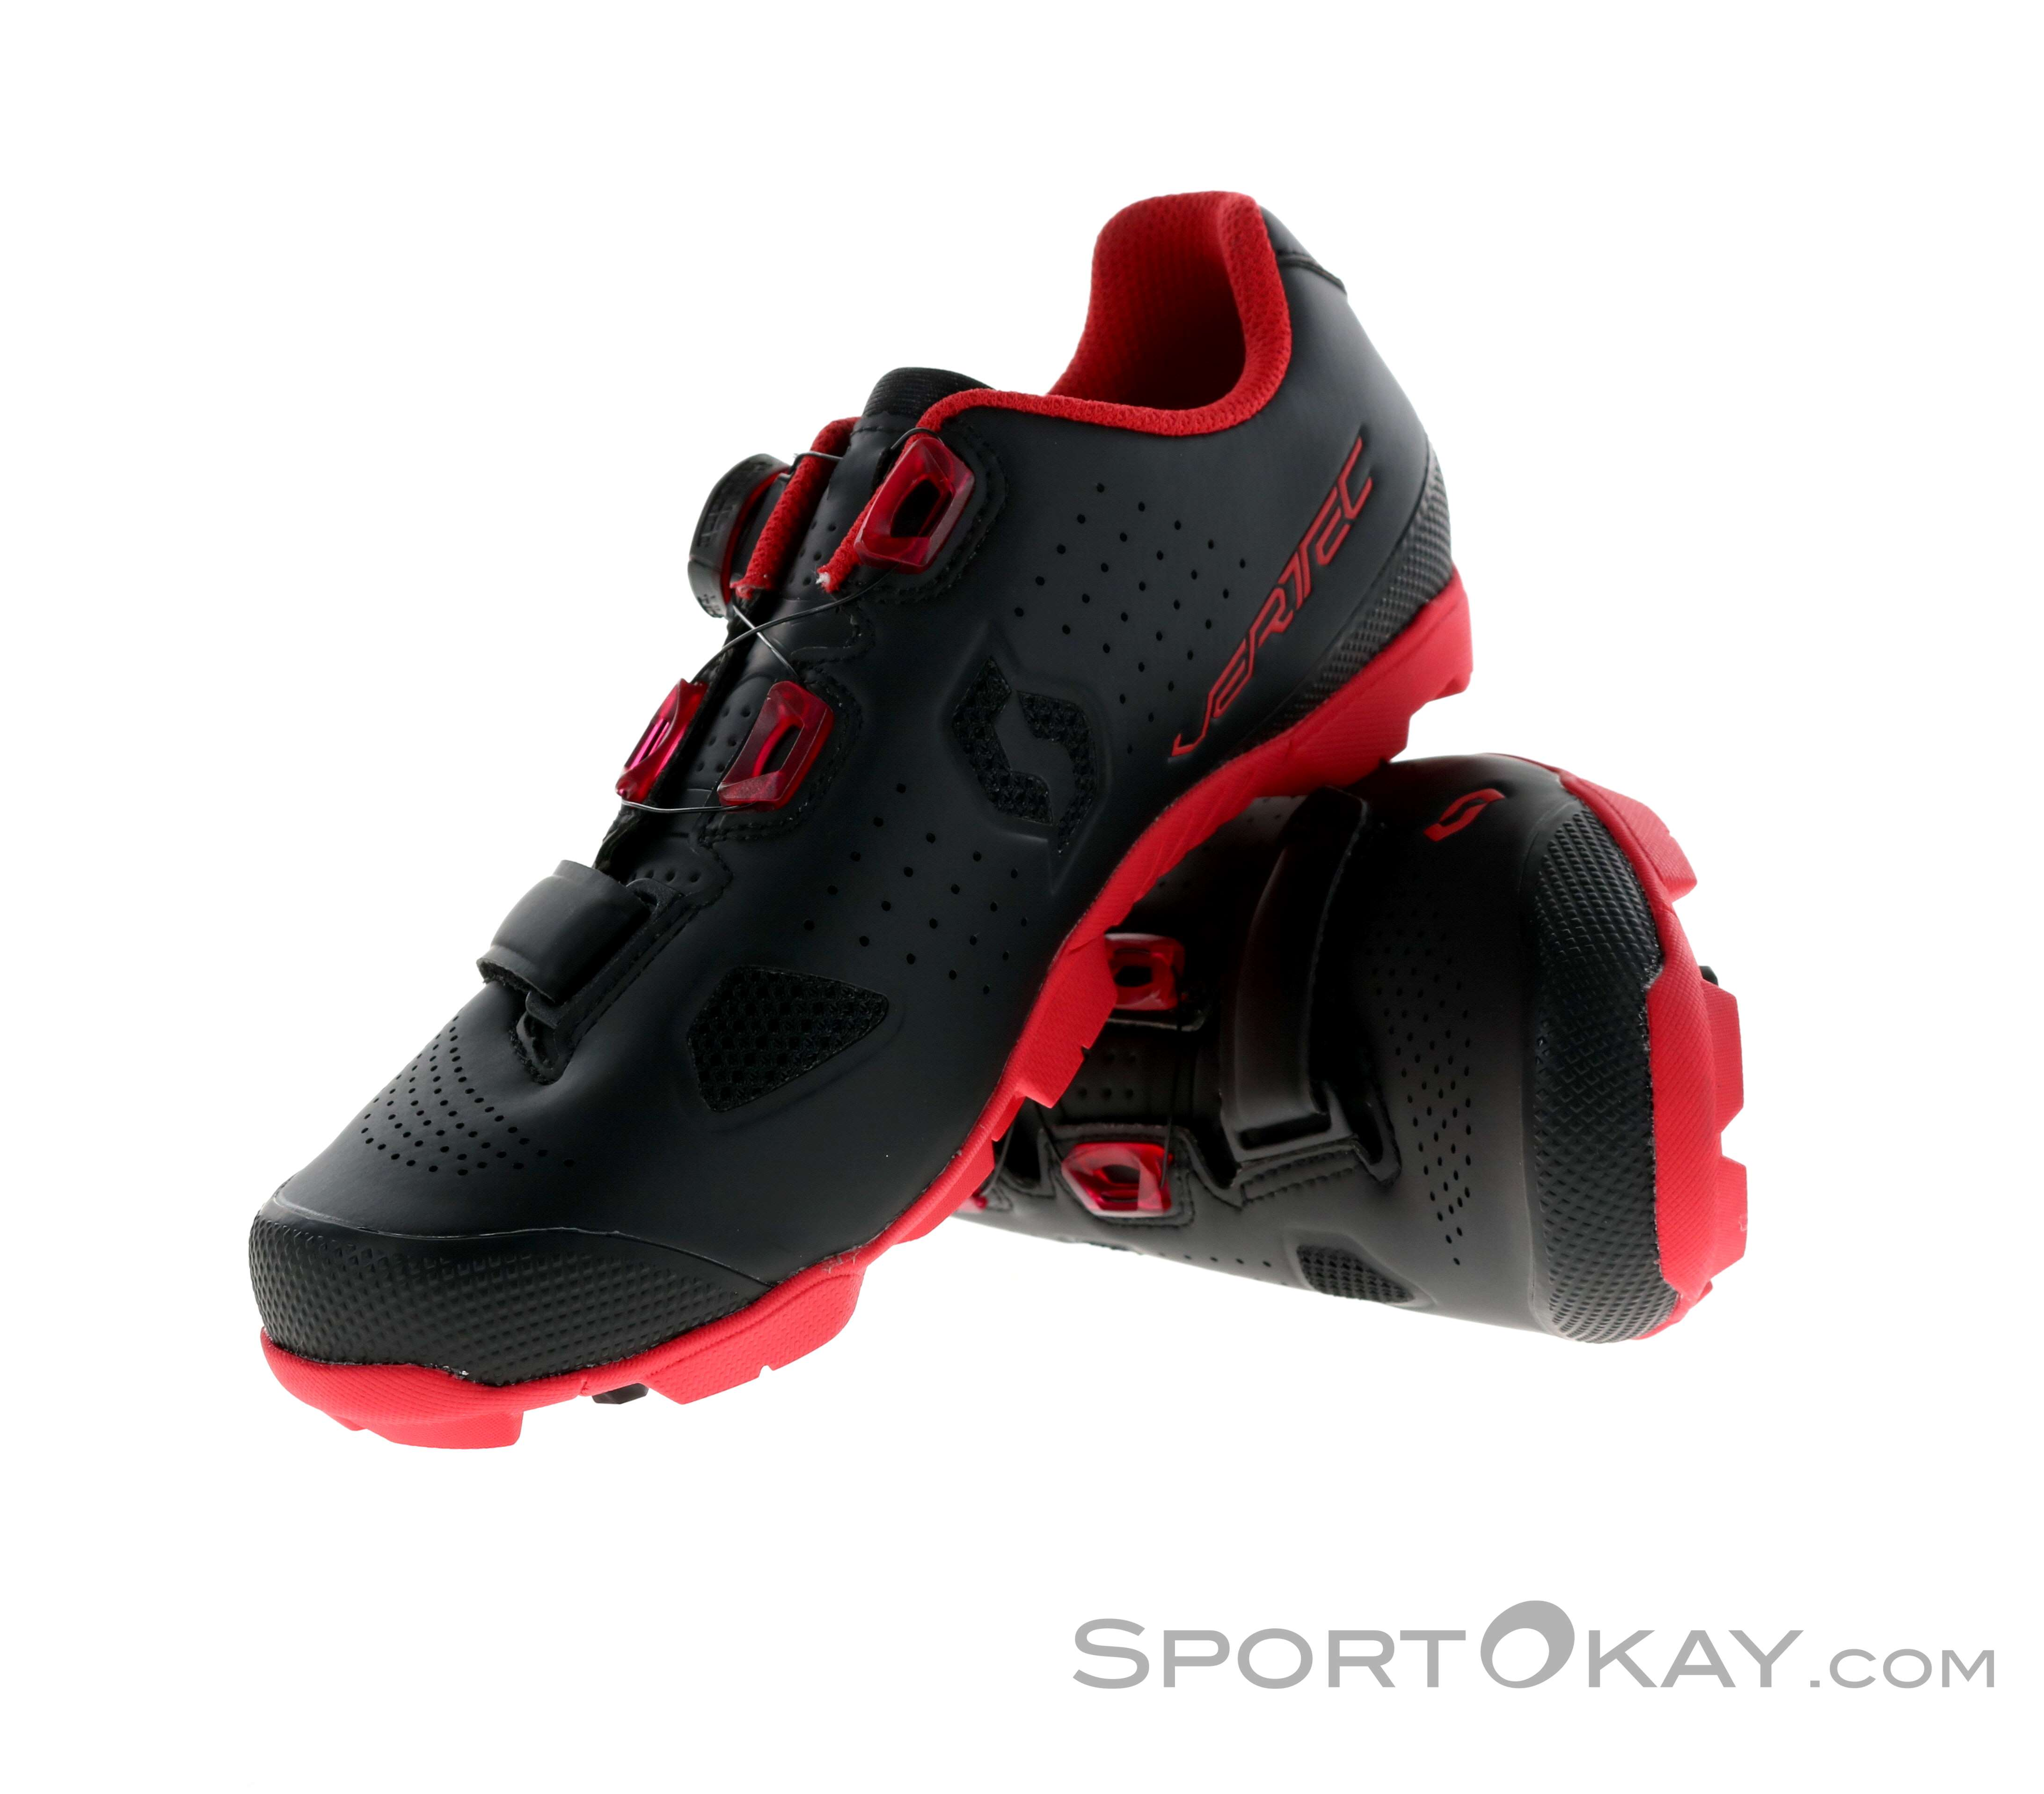 Scott MTB Vertec Boa Womens Biking Shoes Mountain Bike